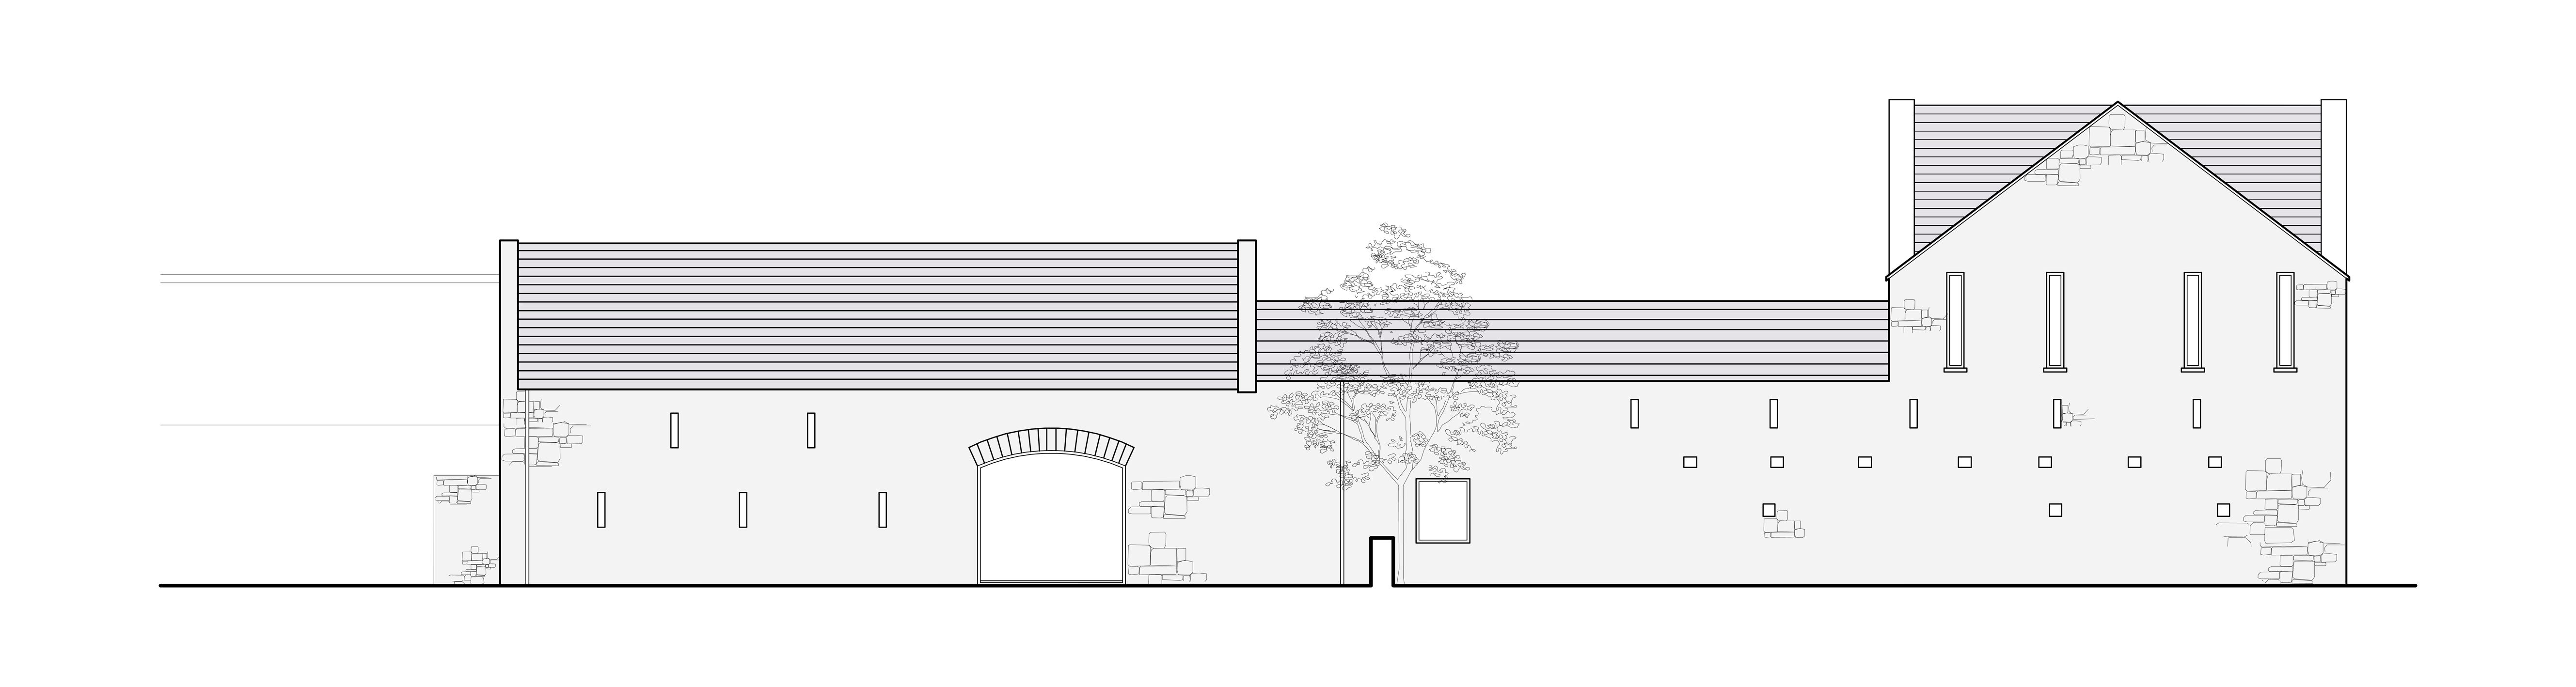 Burren Art College_West Elevation